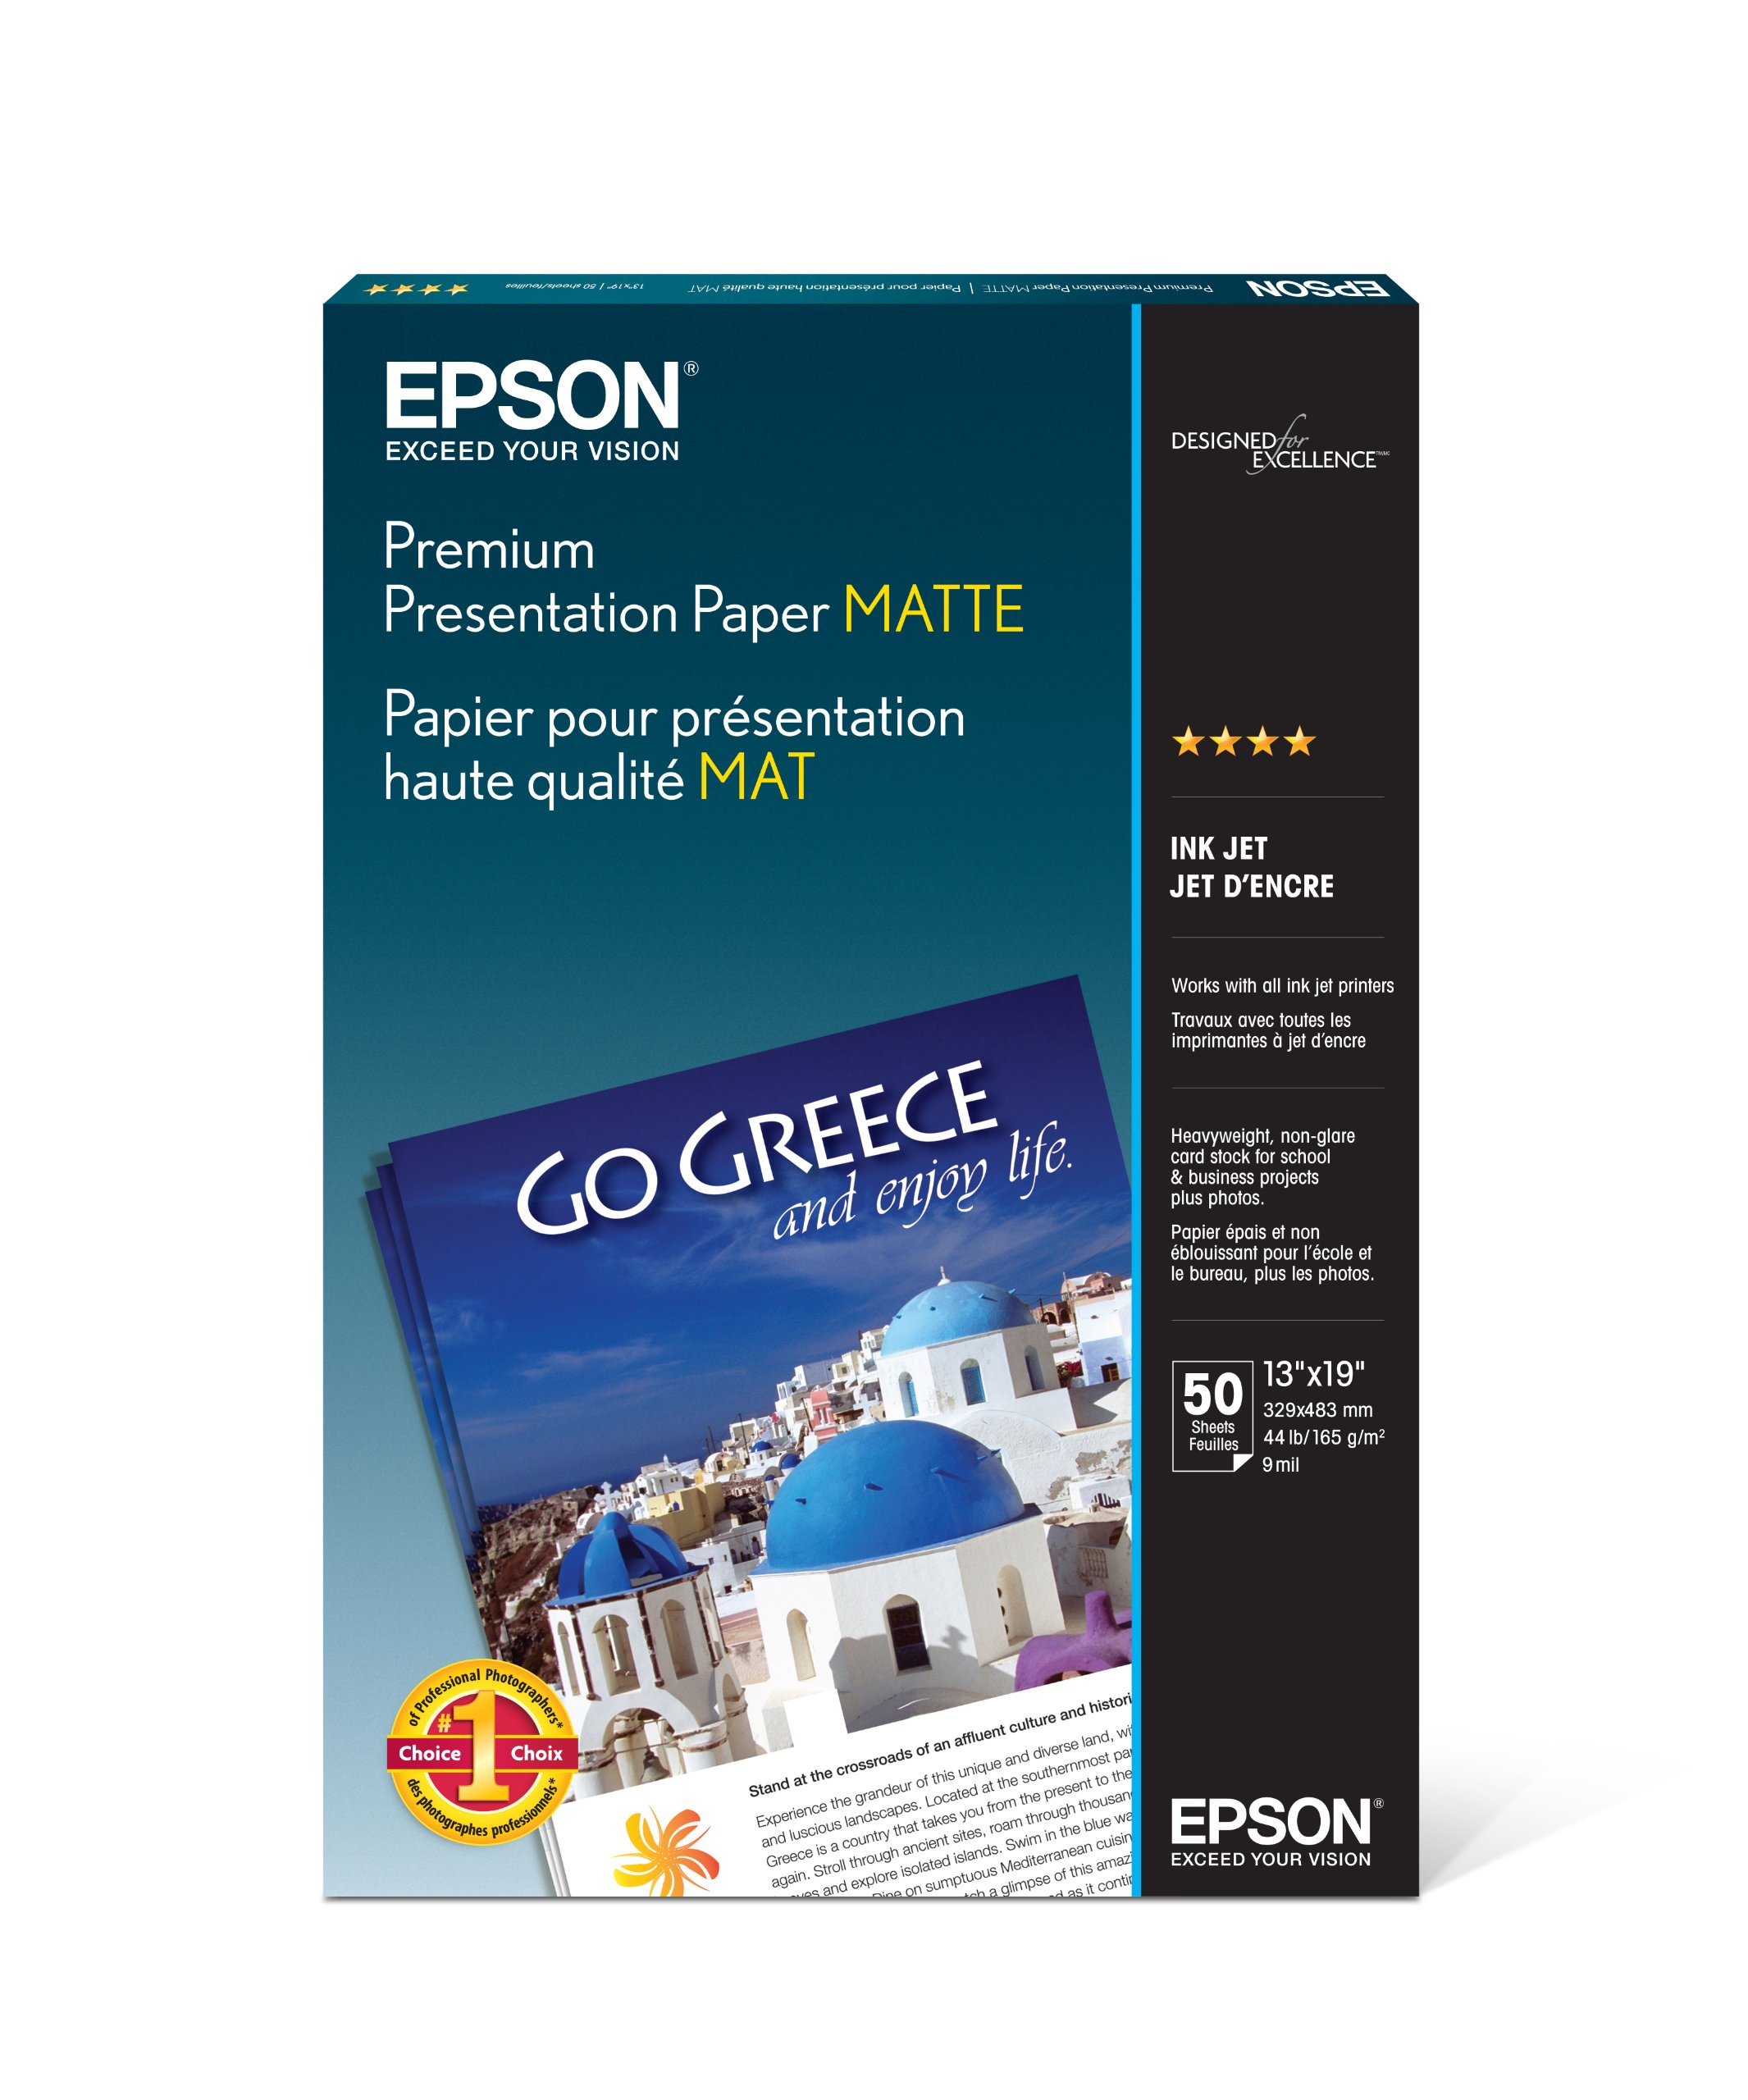 Epson Premium Presentation Paper MATTE (13x19 Inches, 50 Sheets) (S041263) by Epson